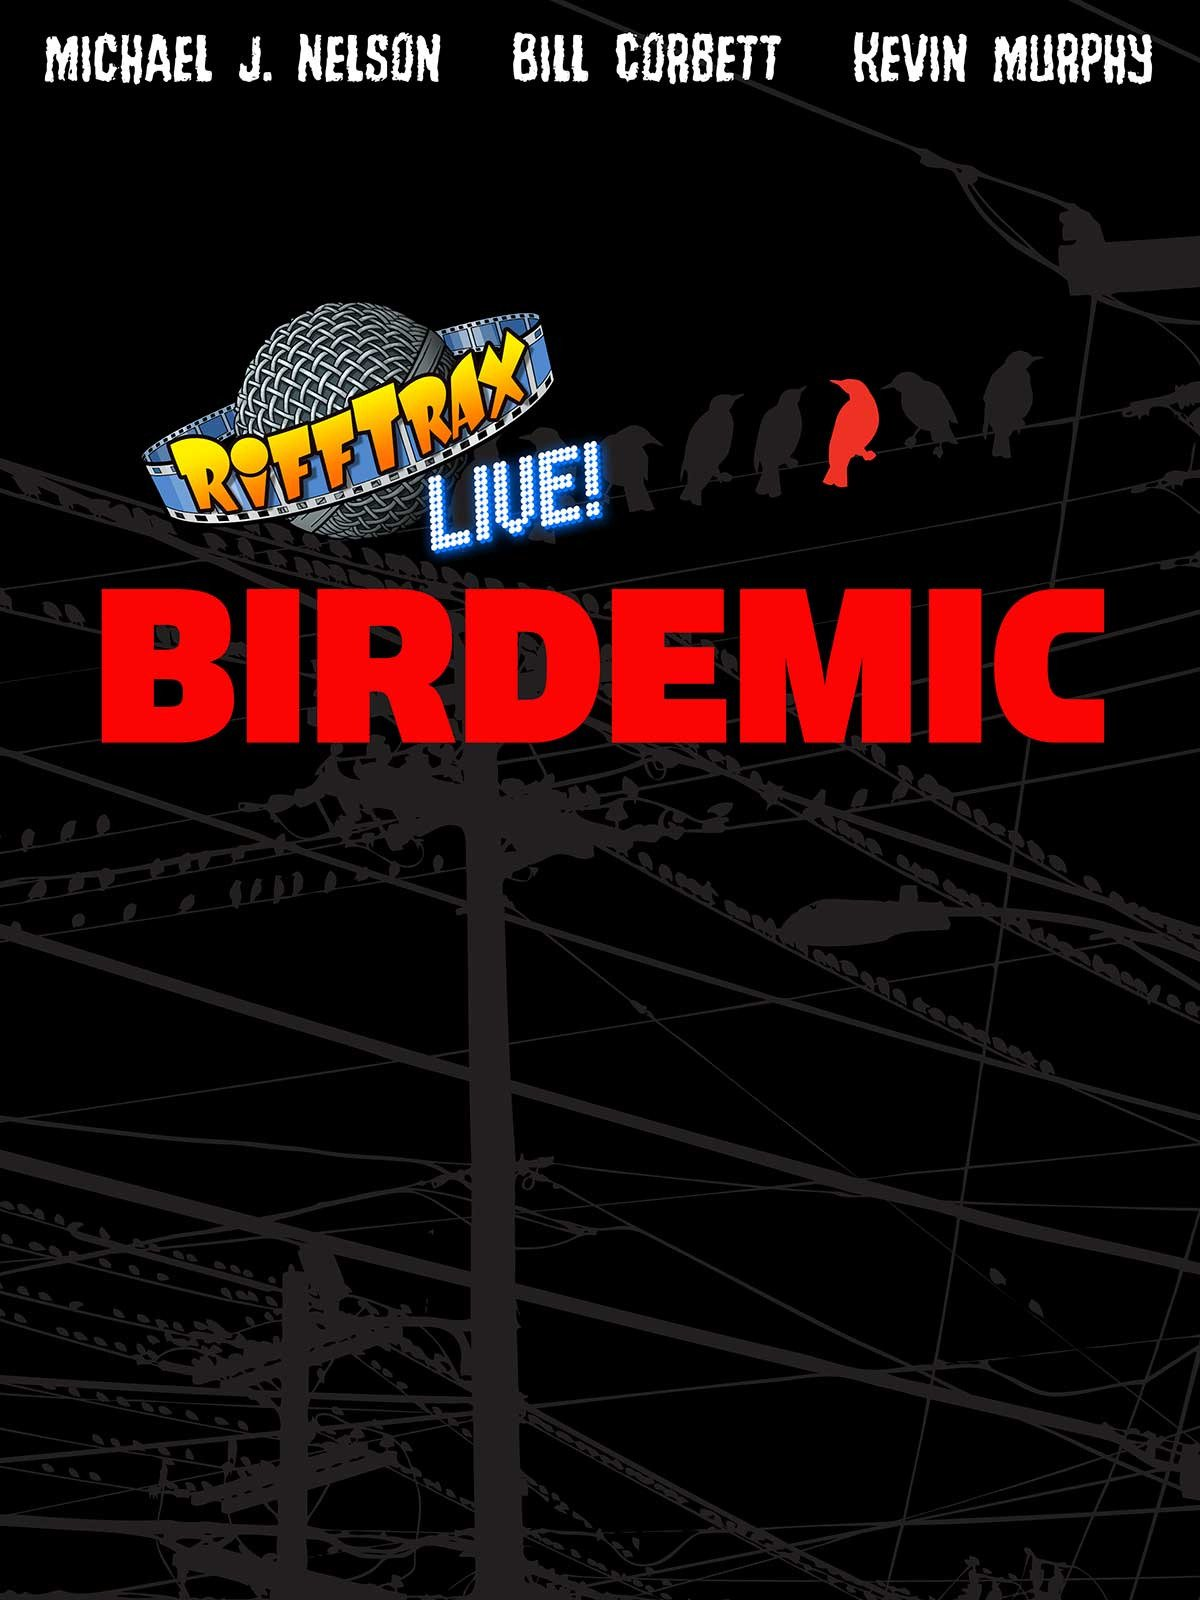 Image result for birdemic movie poster rifftrax